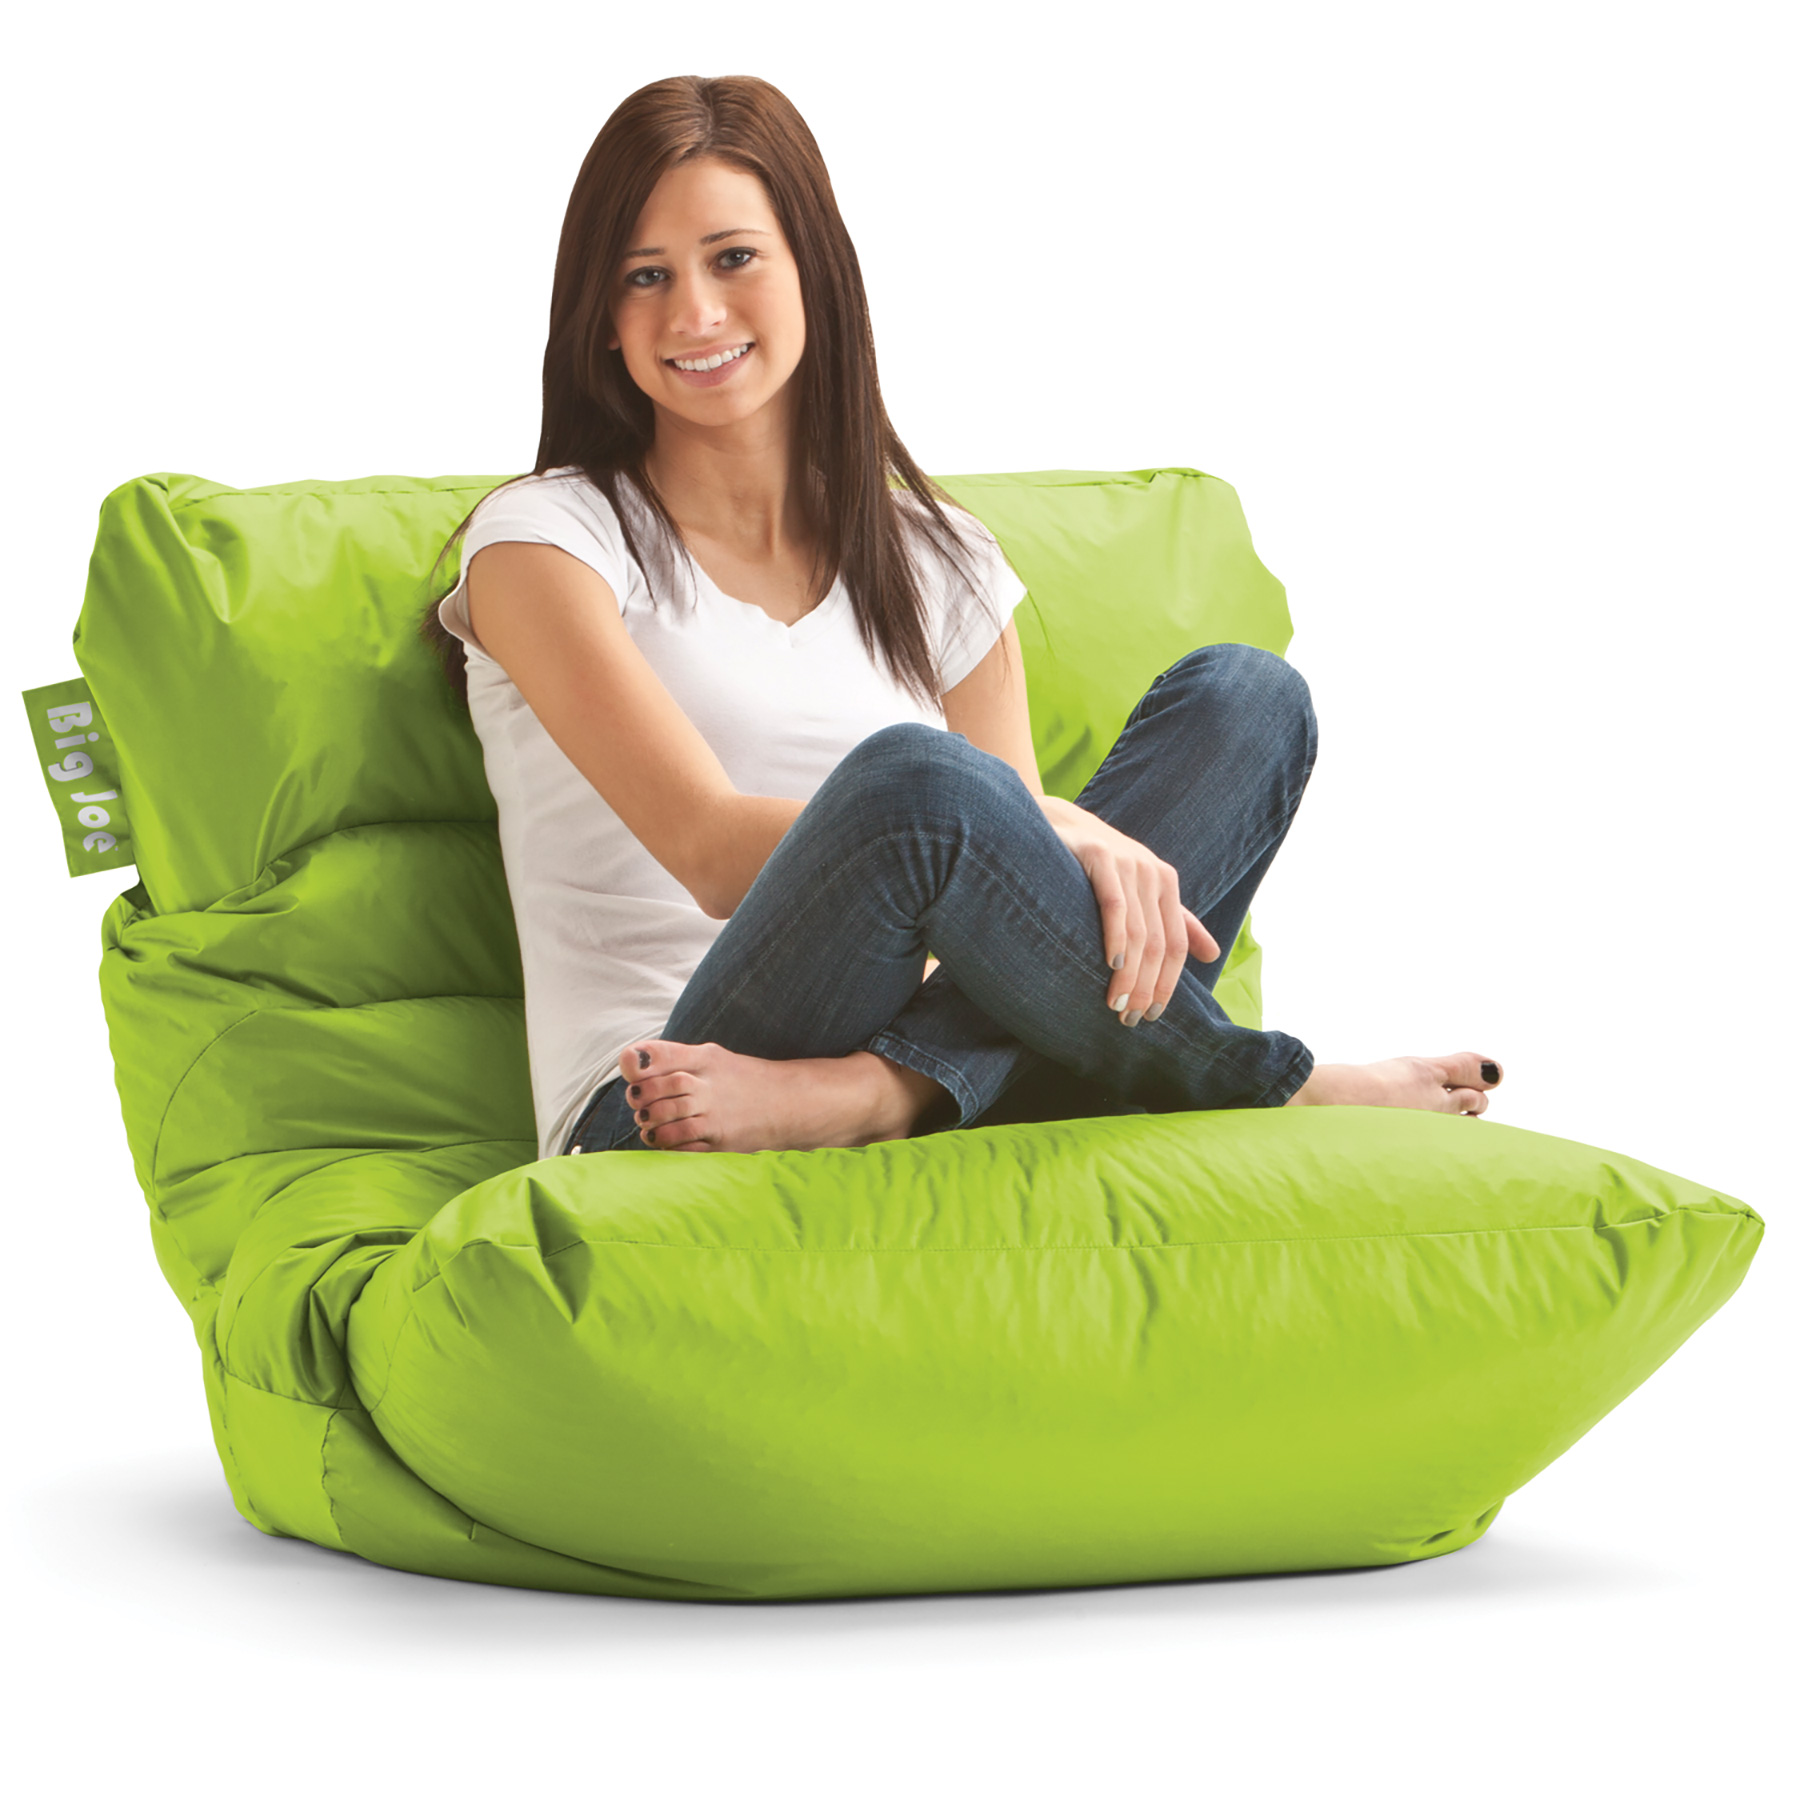 The Big Joe Roma Lounge Chair for your active learning environment.